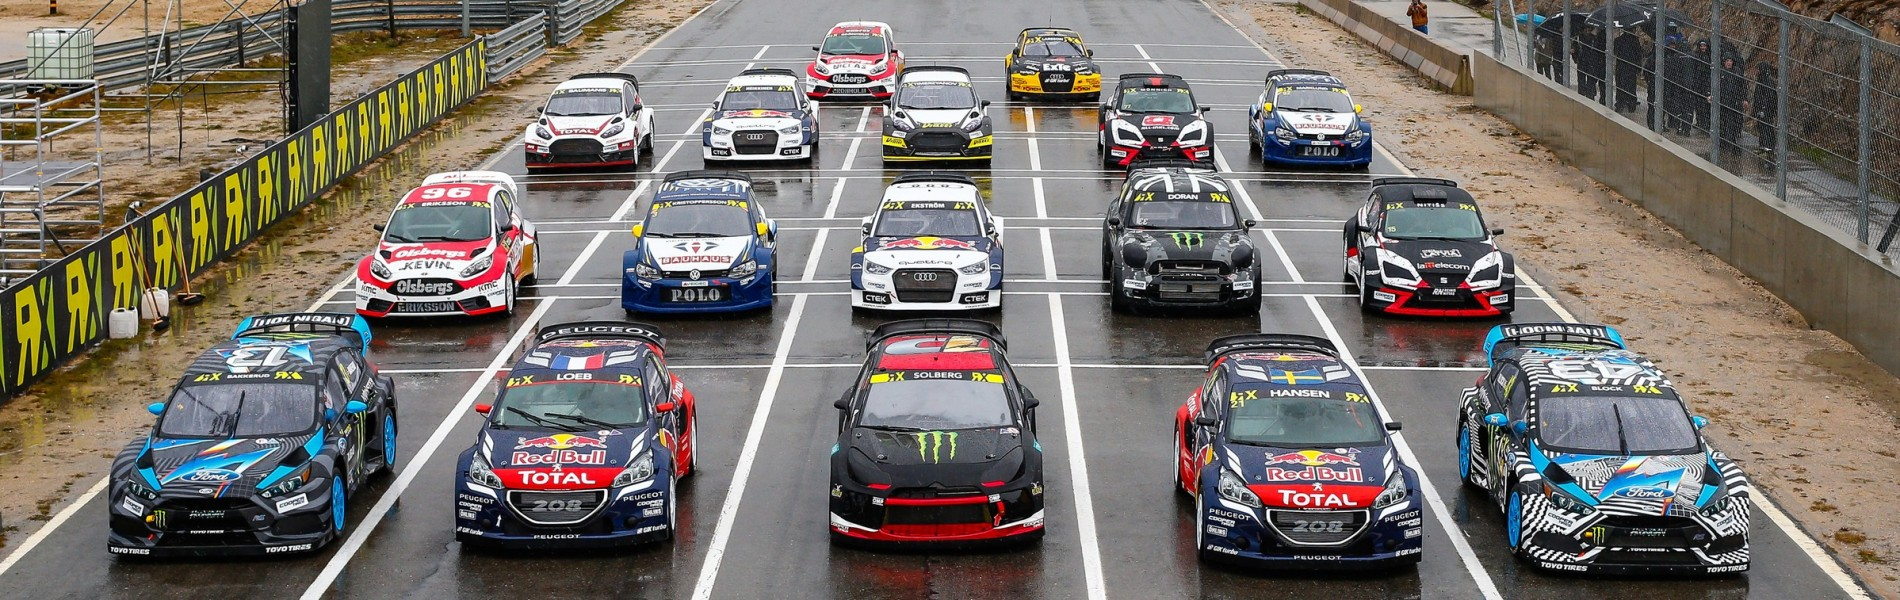 Friday images from round one of the FIA World Rallycross Championship, Round 1